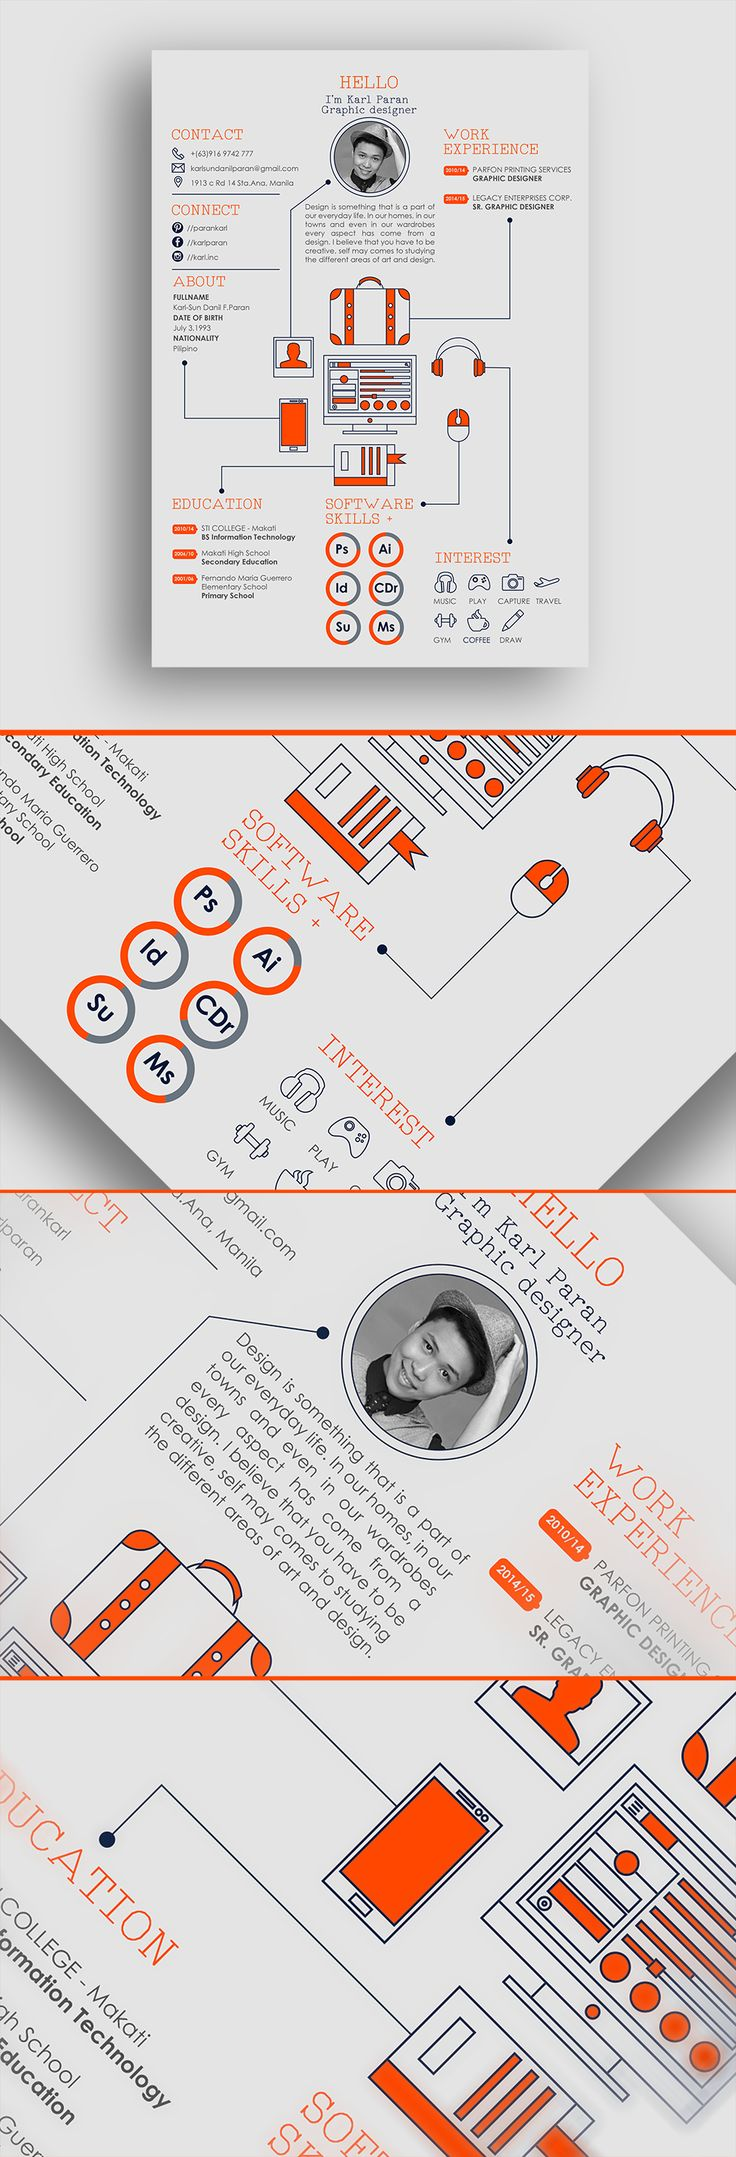 my Curriculum Vitae Design to make it Stand Out [perfect resume and cover letter are just a click away --> www.kickresume.com ]